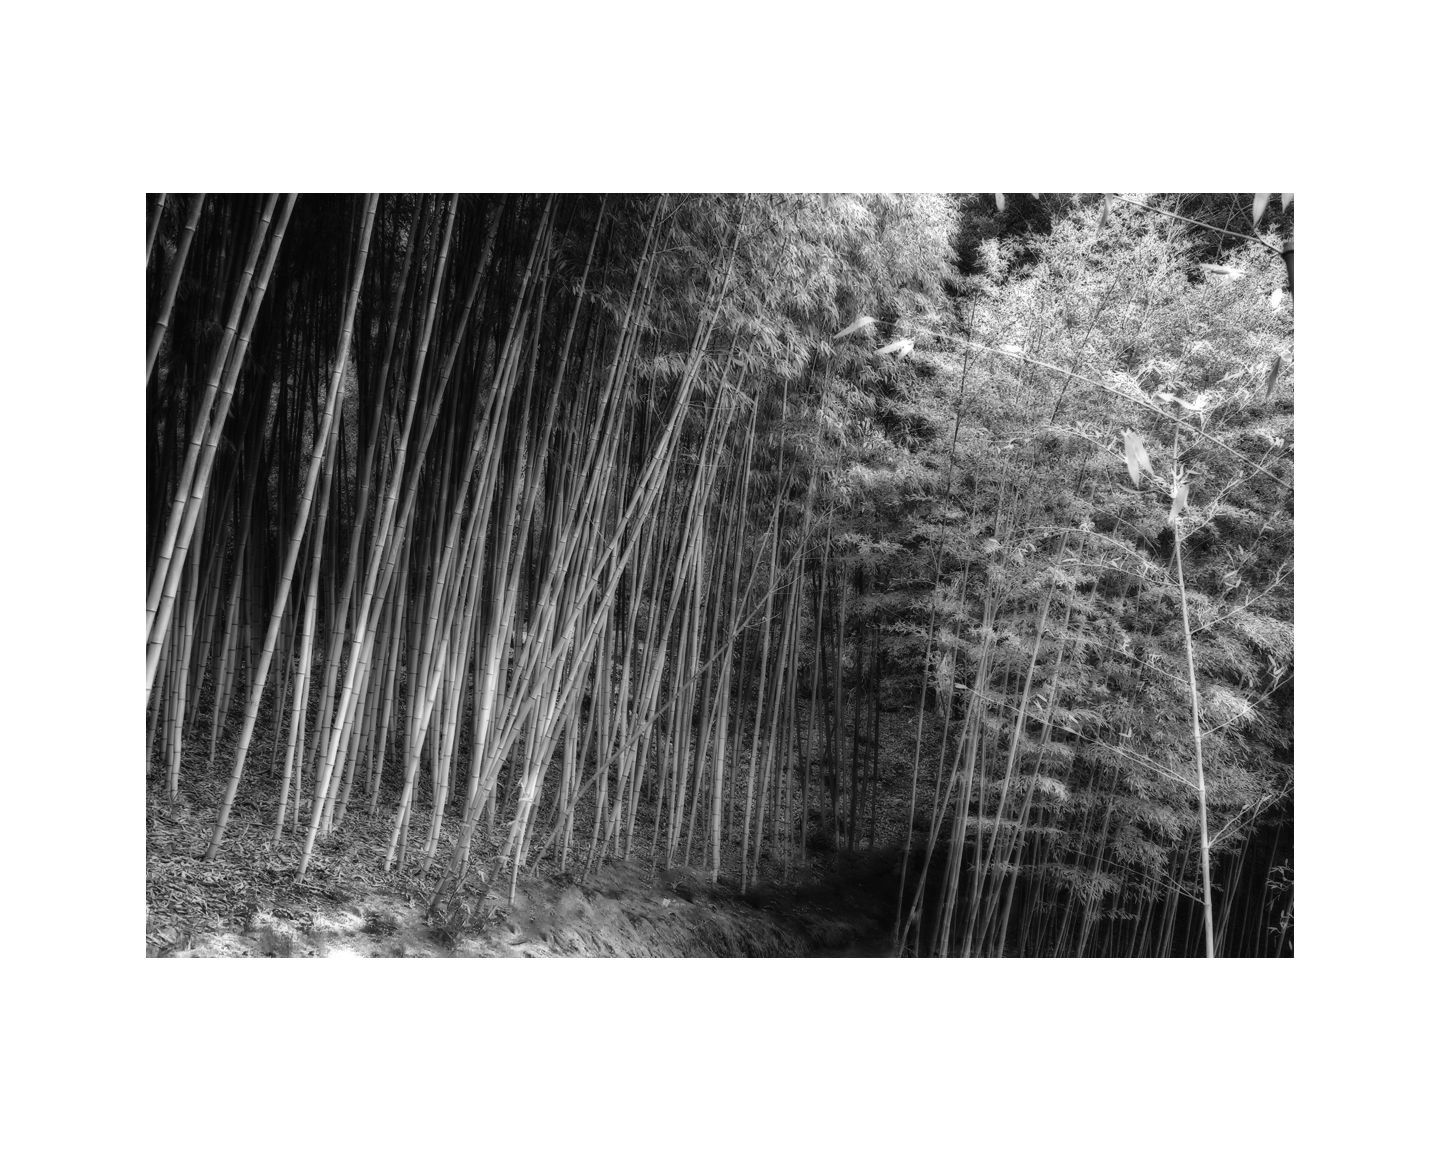 1bamboo_forest_path_216x20_b_w_2658